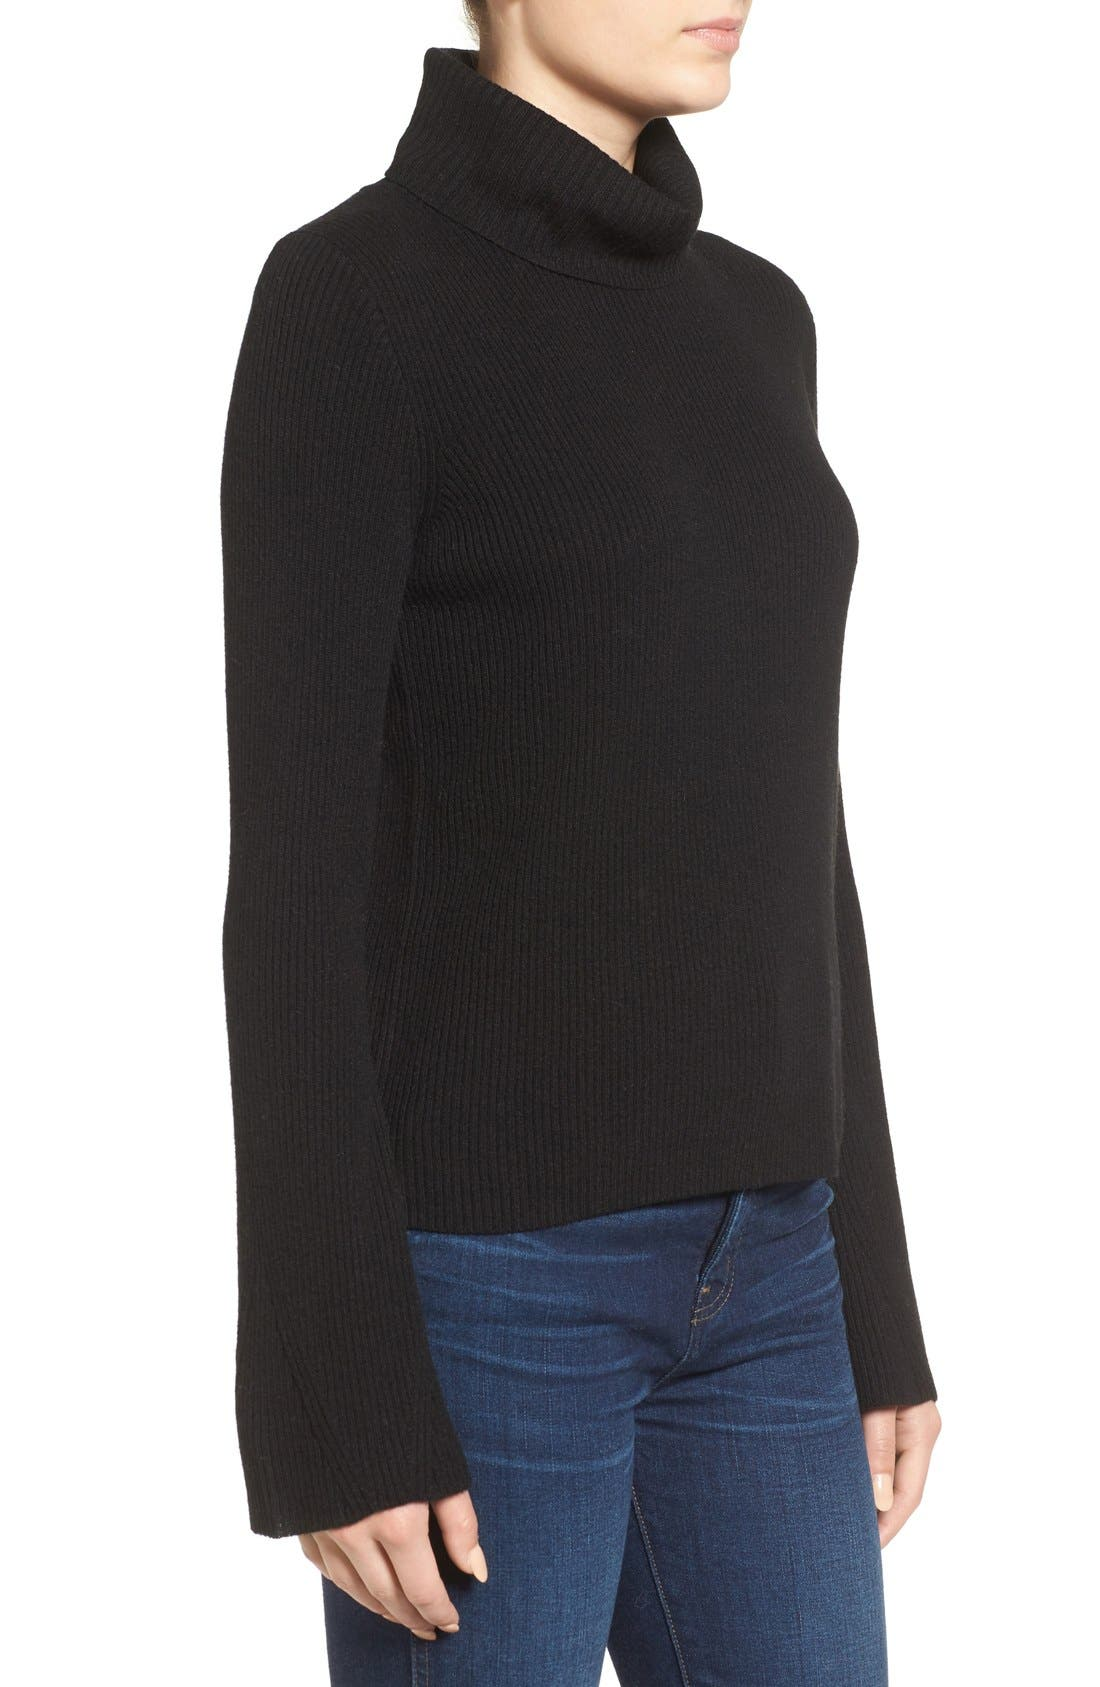 MADEWELL,                             Turtleneck Sweater,                             Alternate thumbnail 6, color,                             001